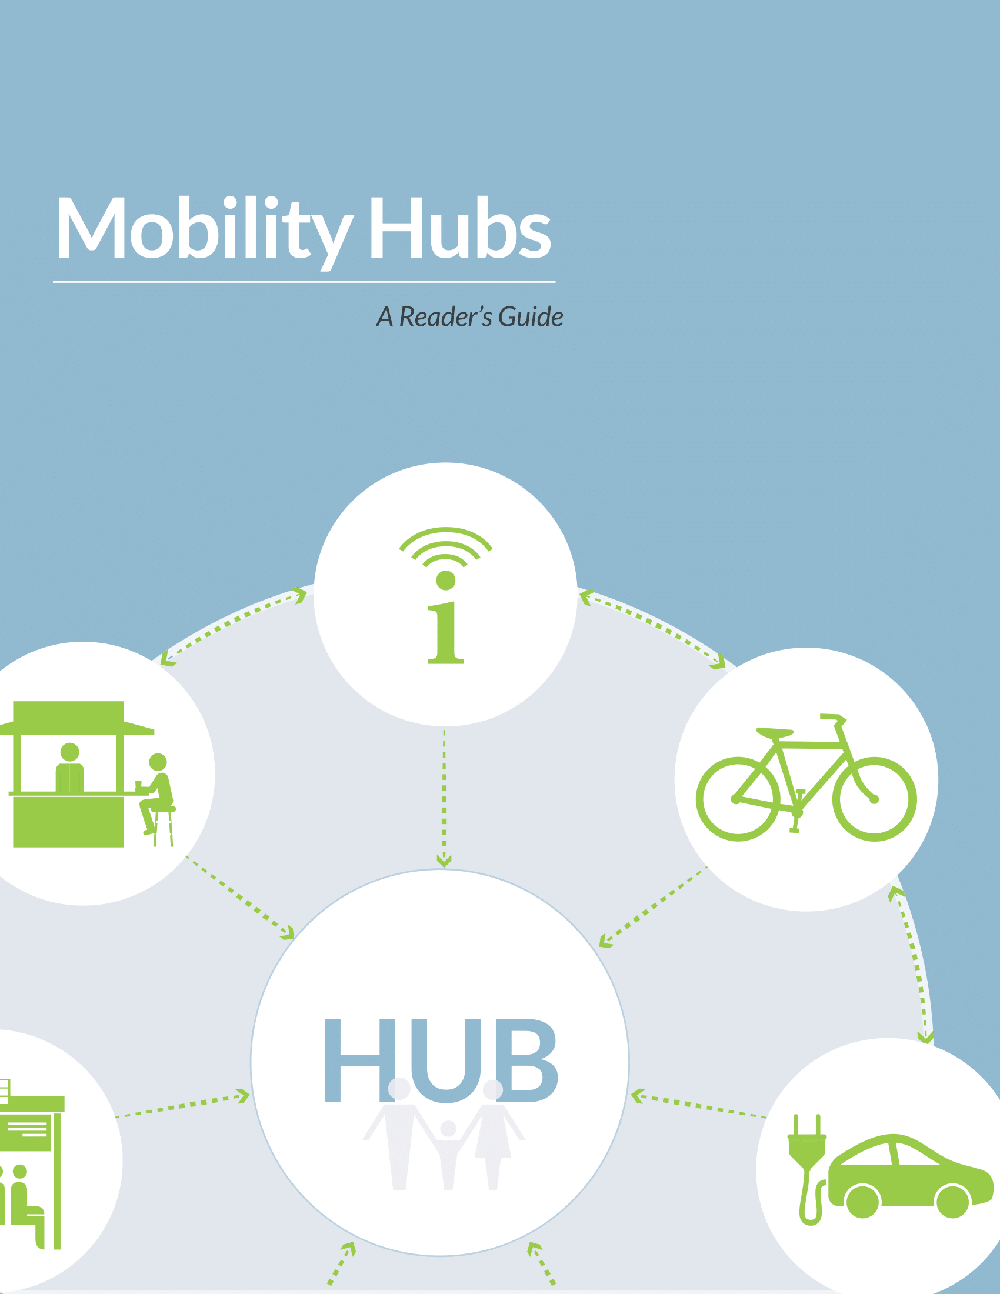 Mobility Hubs: A Reader's Guide